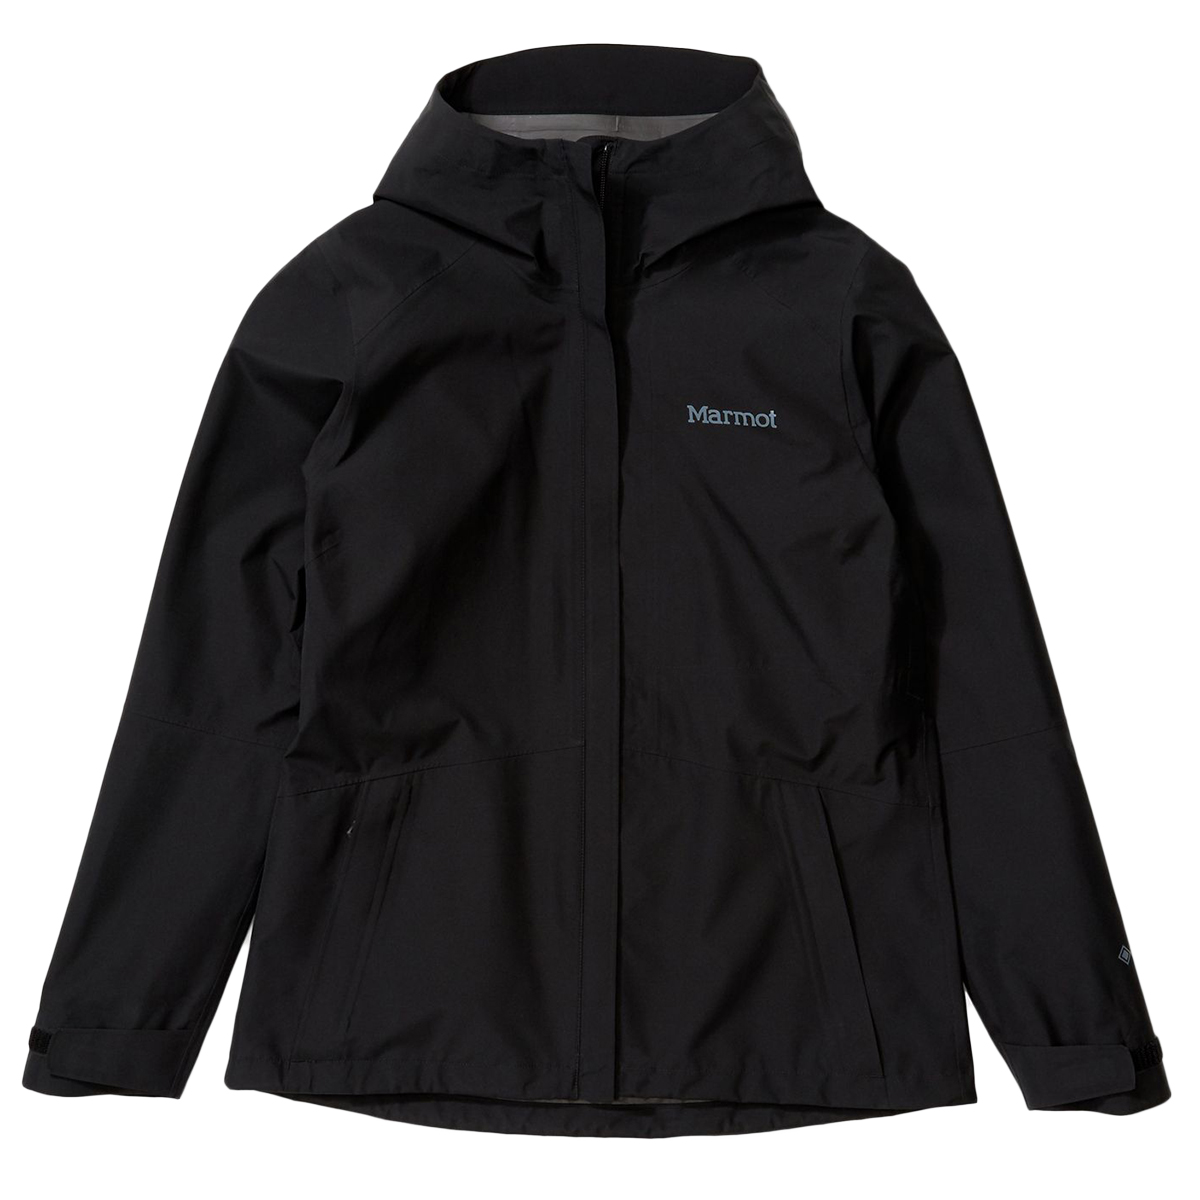 Marmot Women's Minimalist Jacket - Black, L